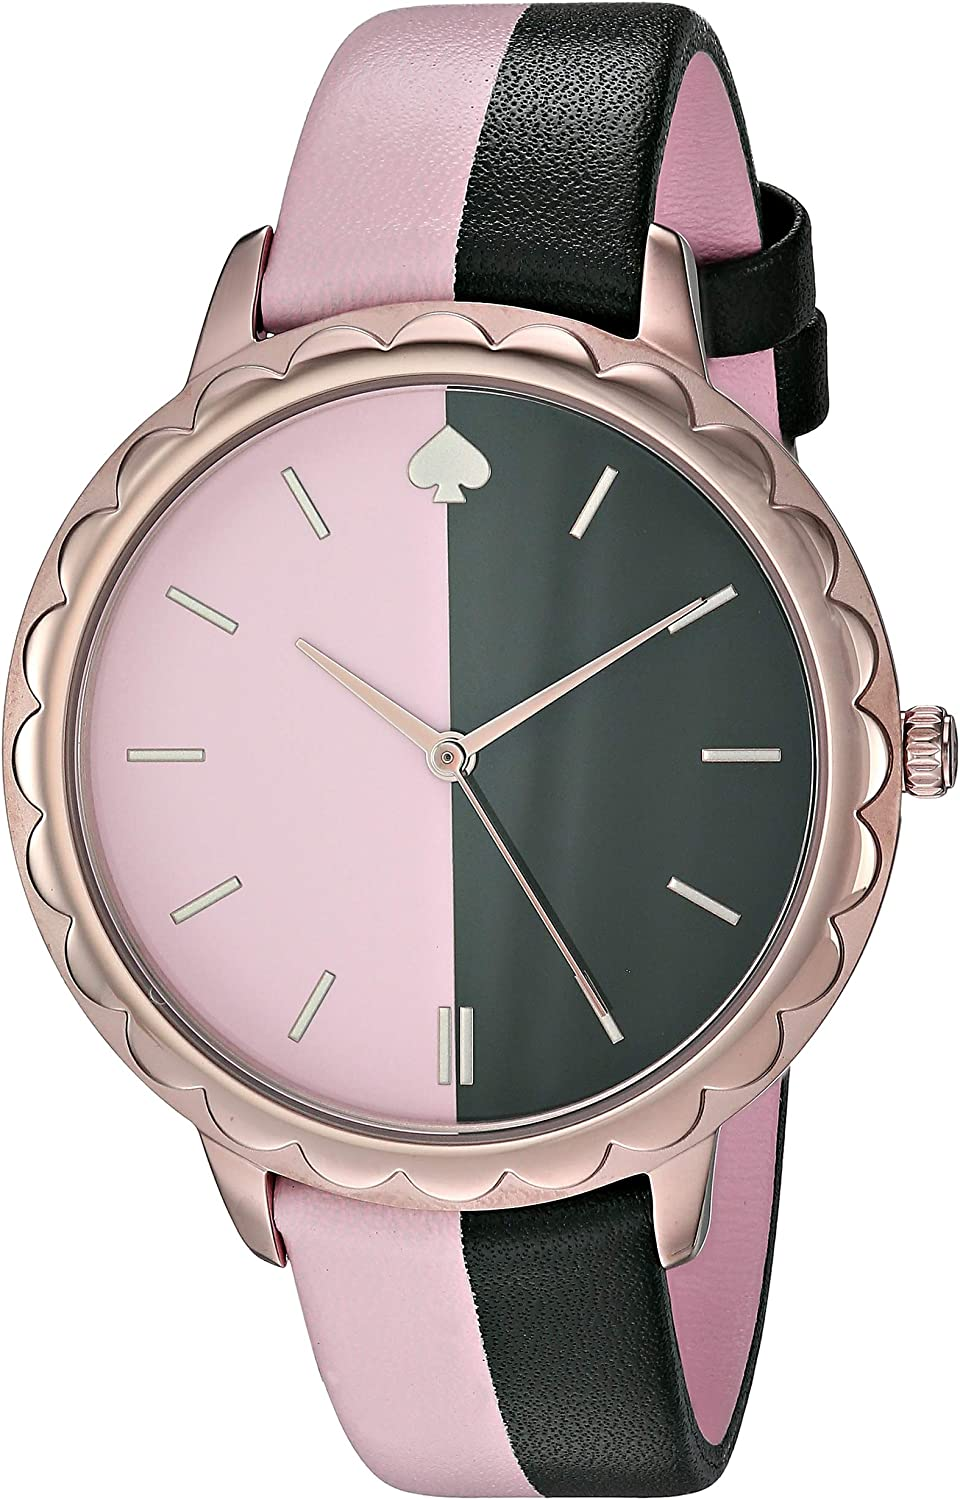 kate spade new york Women's Stainless Steel Quartz Watch with Leather Strap, Multi, 15.3 (Model: KSW1530)